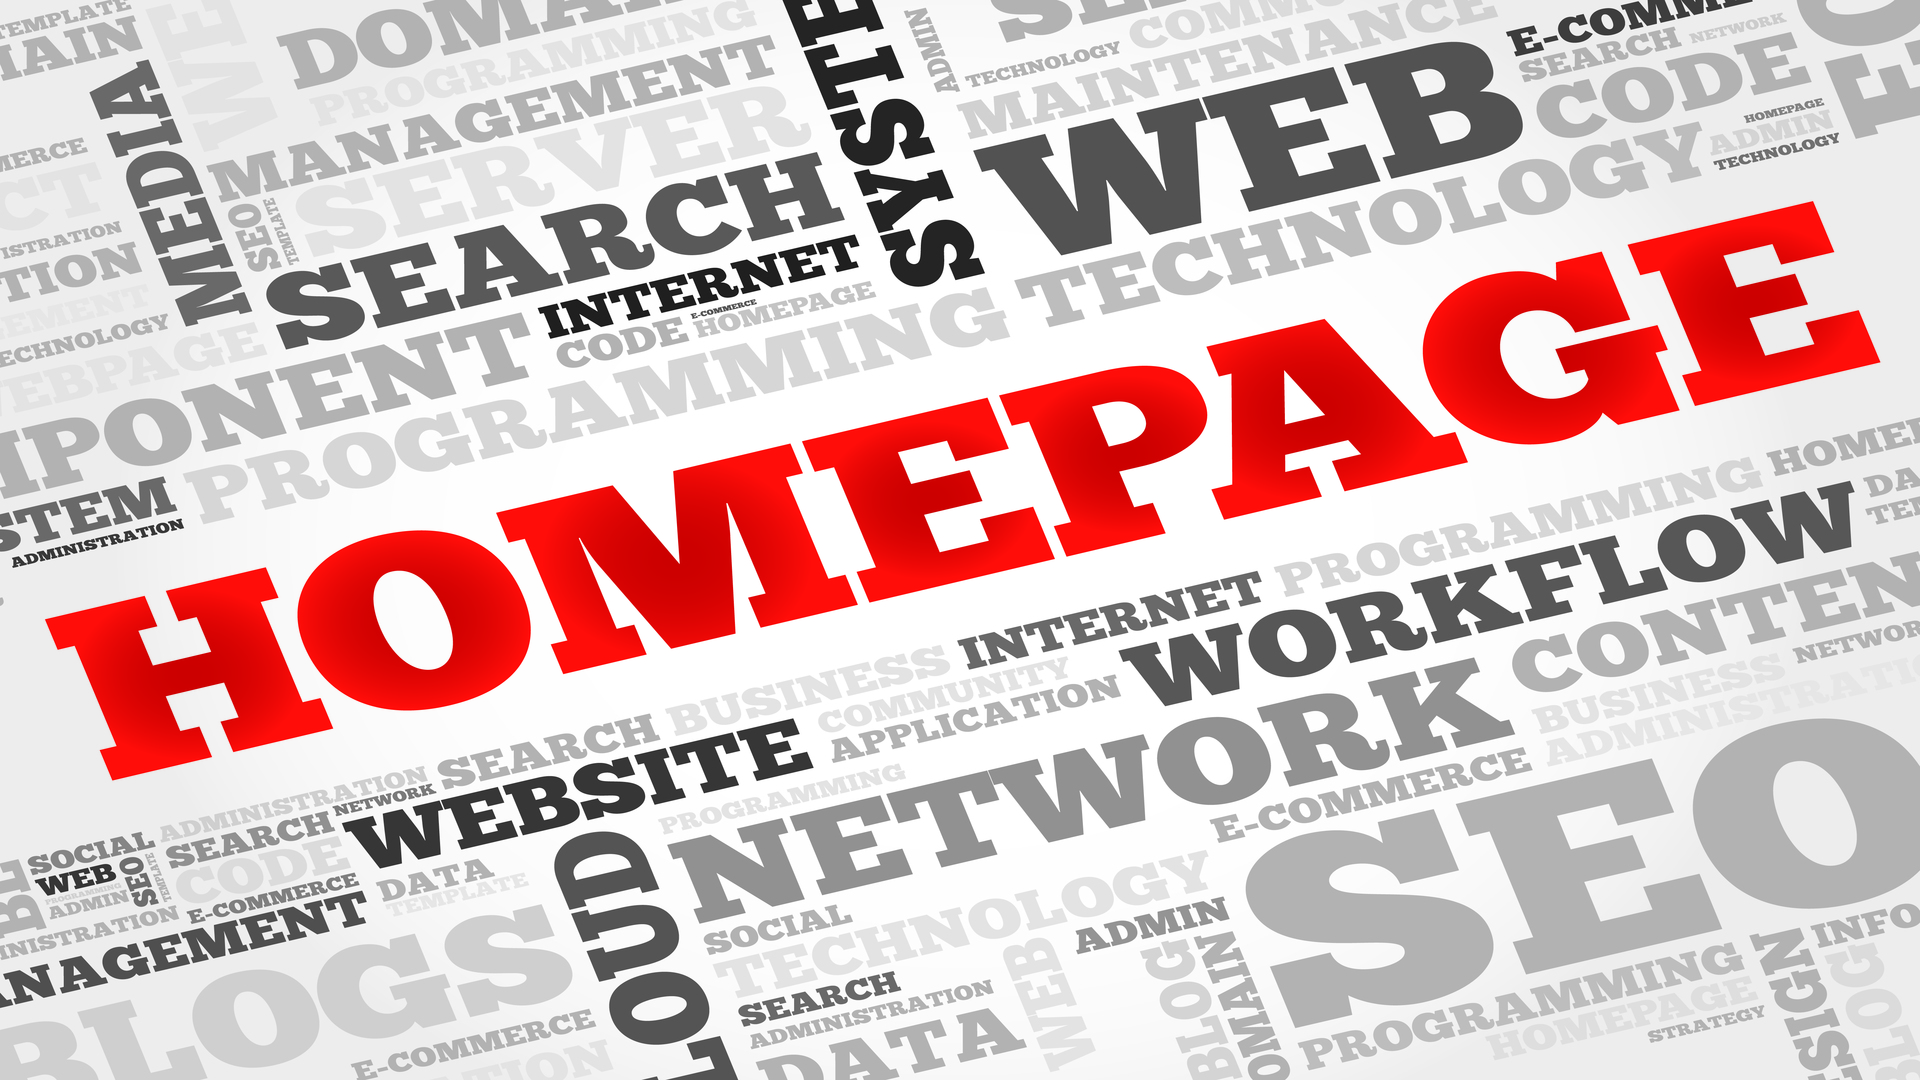 Creating Home page and basic pages | Valuebound